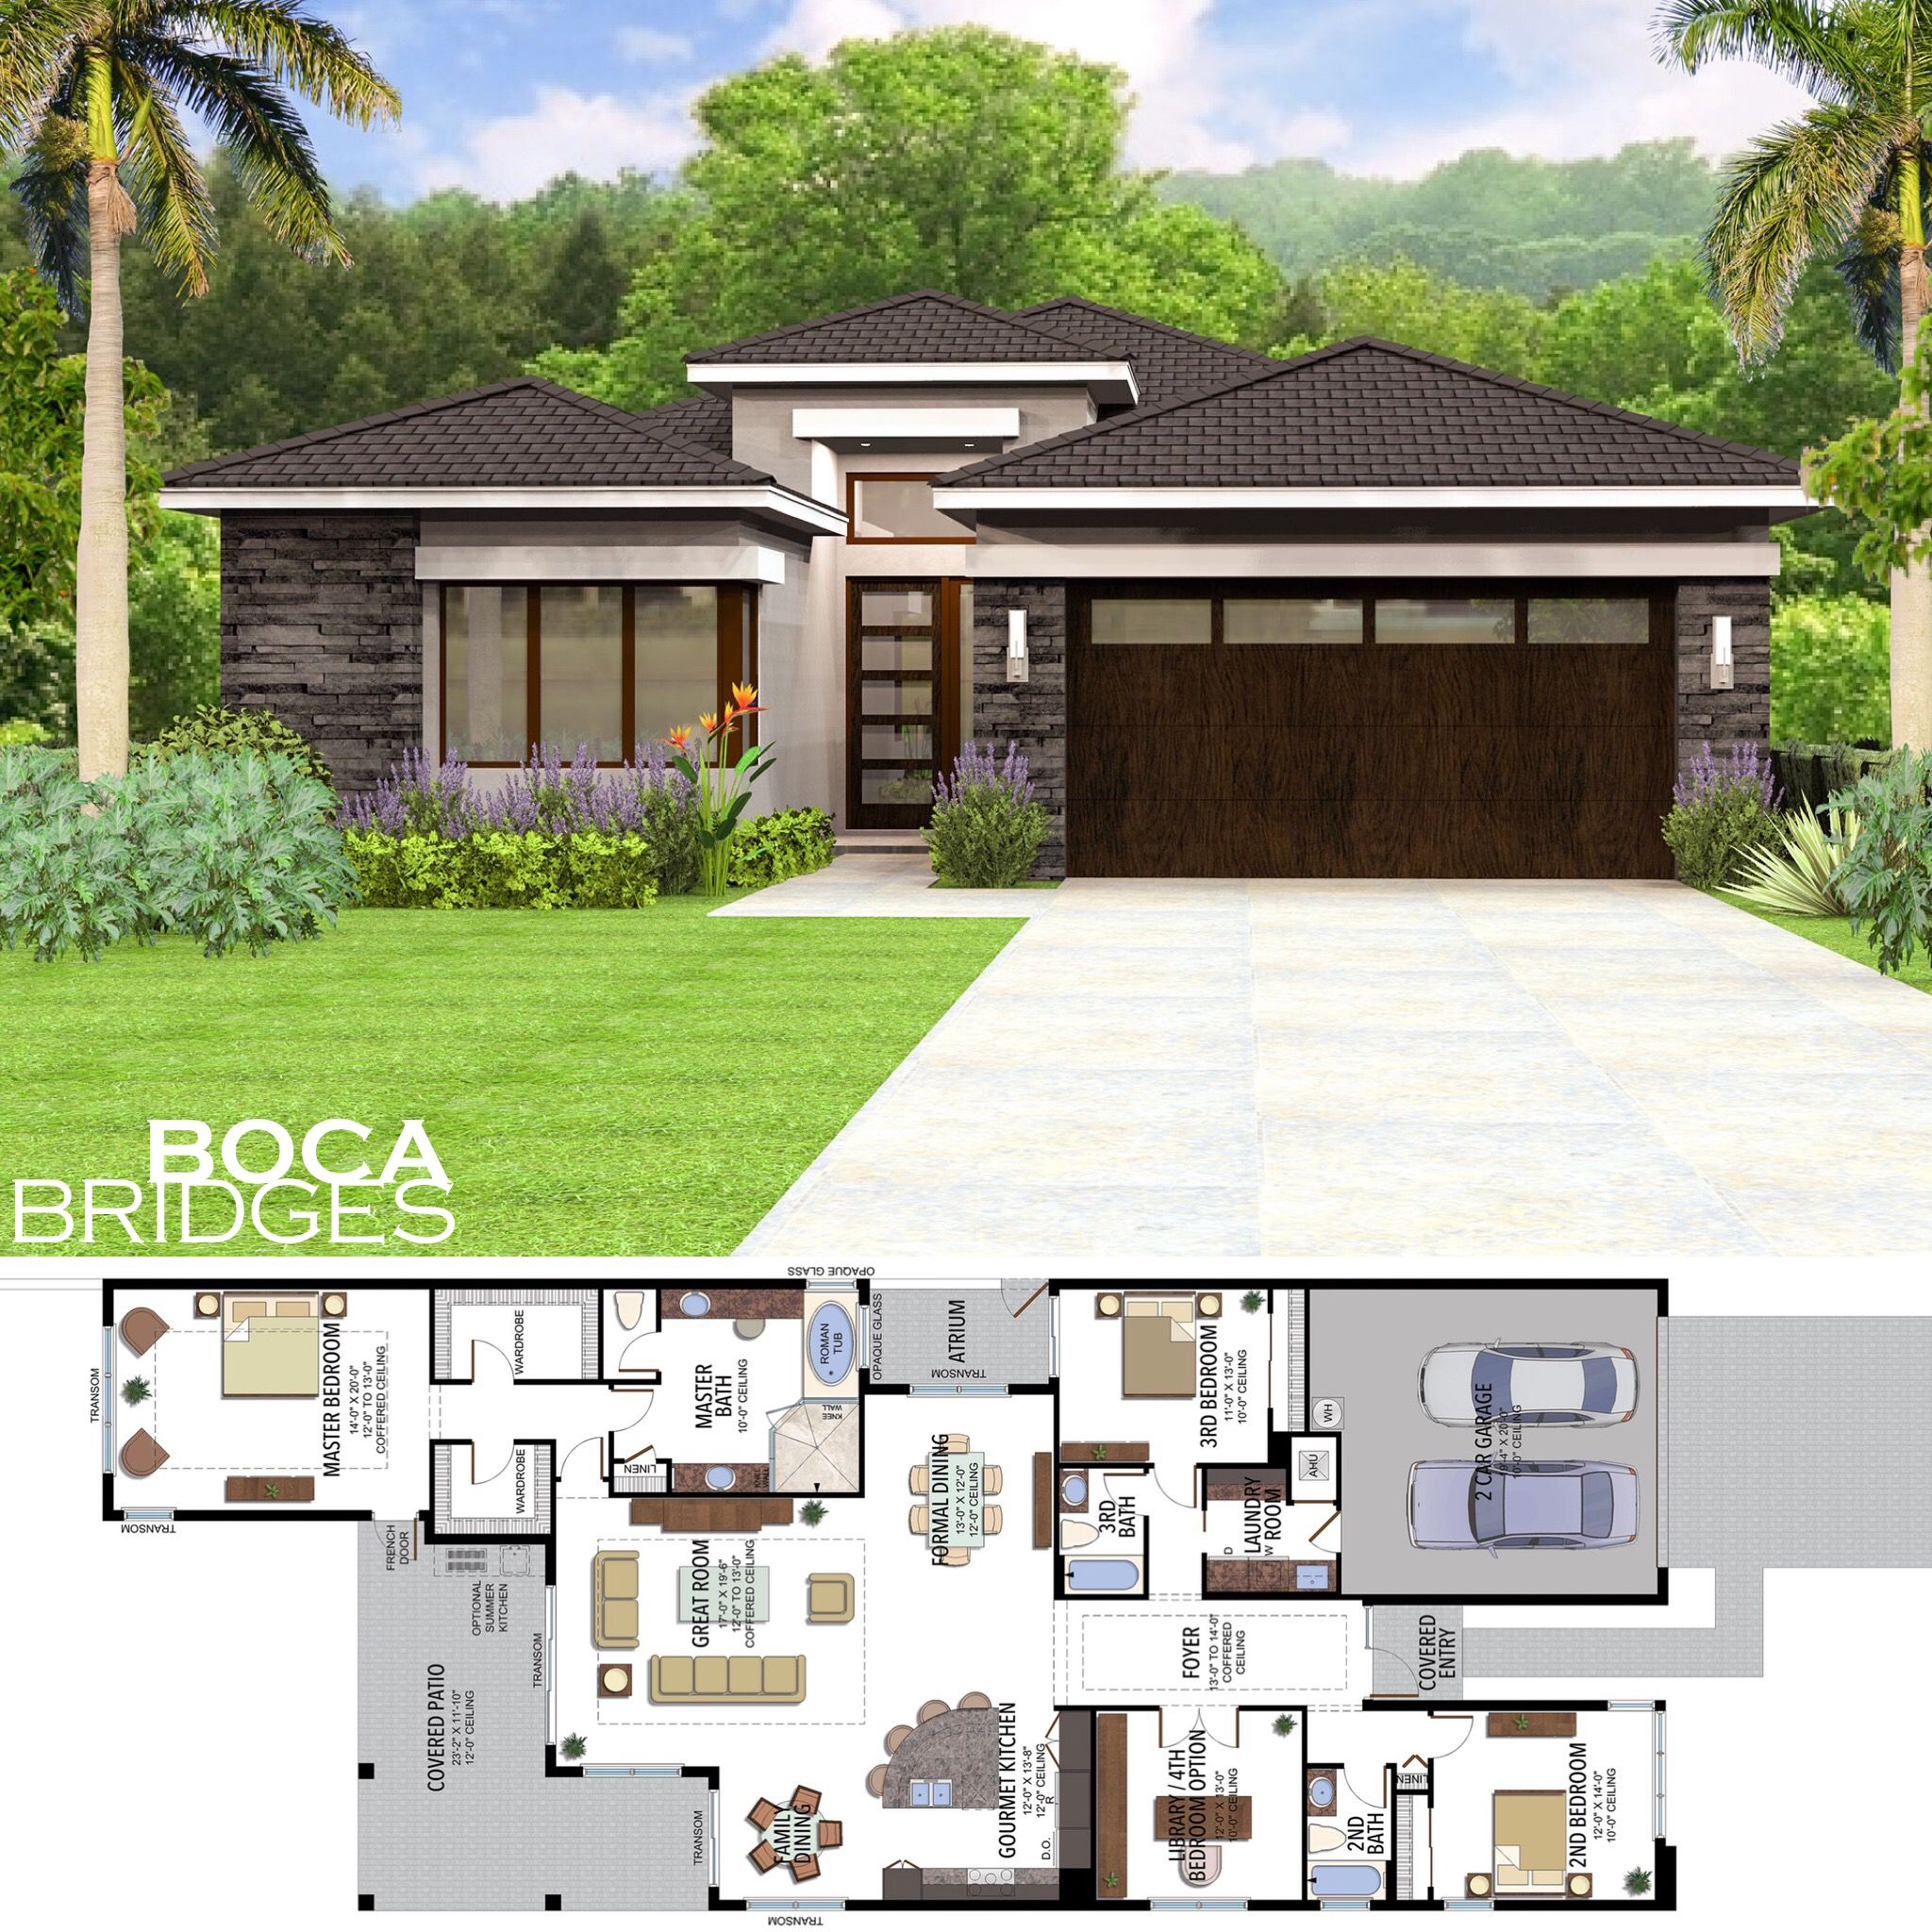 Now Available New Contemporary Home Designs At Bocabridges From The 800 S Follow The Link Our Bio Fo Beautiful House Plans House Layouts House Plan Gallery